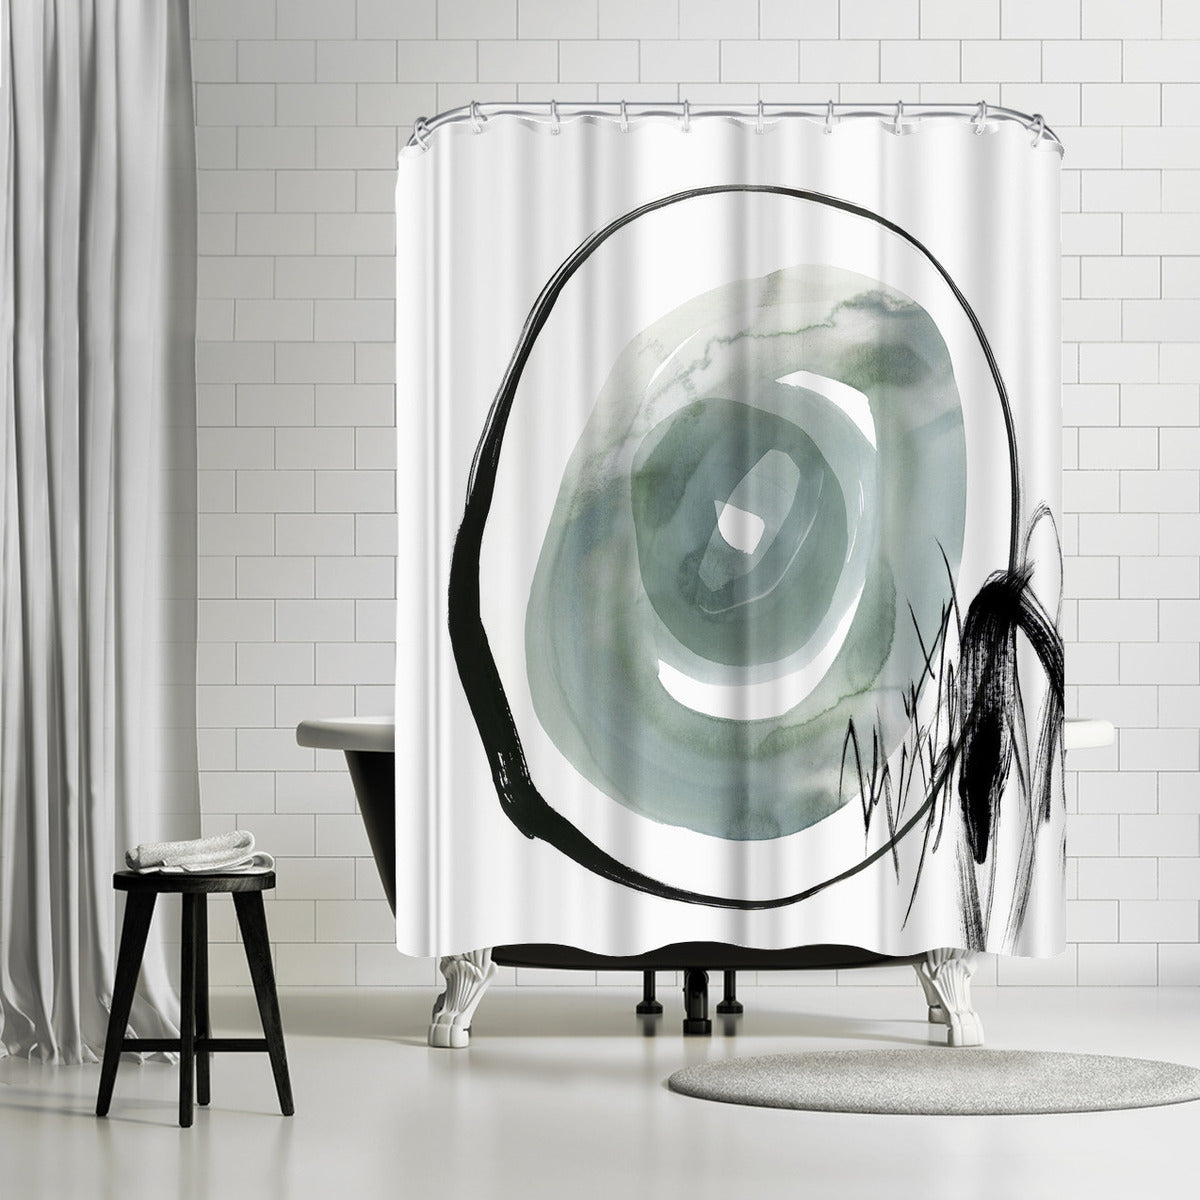 Perforation Ii by PI Creative Art Shower Curtain - Shower Curtain - Americanflat